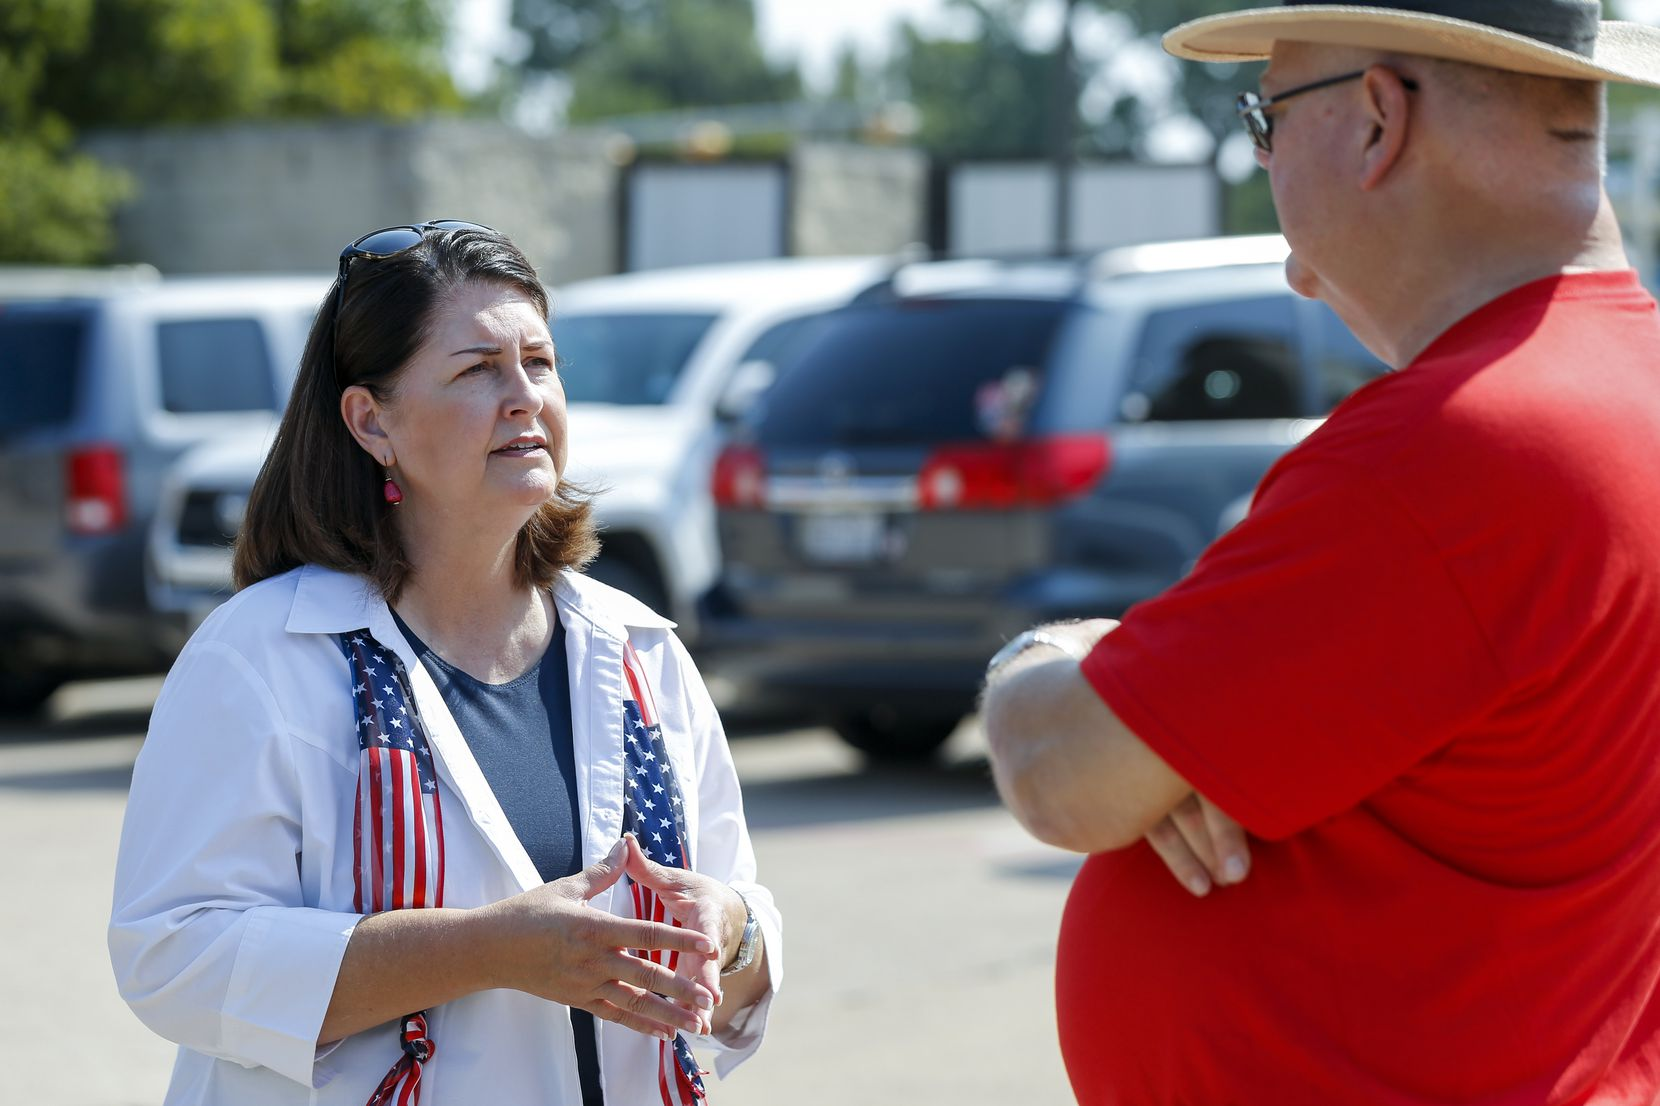 Susan Wright, Republican candidate for Texas' 6th Congressional District (left), speaks with Linton Davis of Arlington outside a polling location during early voting for a special runoff election on Thursday, July 22, 2021, in Arlington. (Elias Valverde II/The Dallas Morning News)